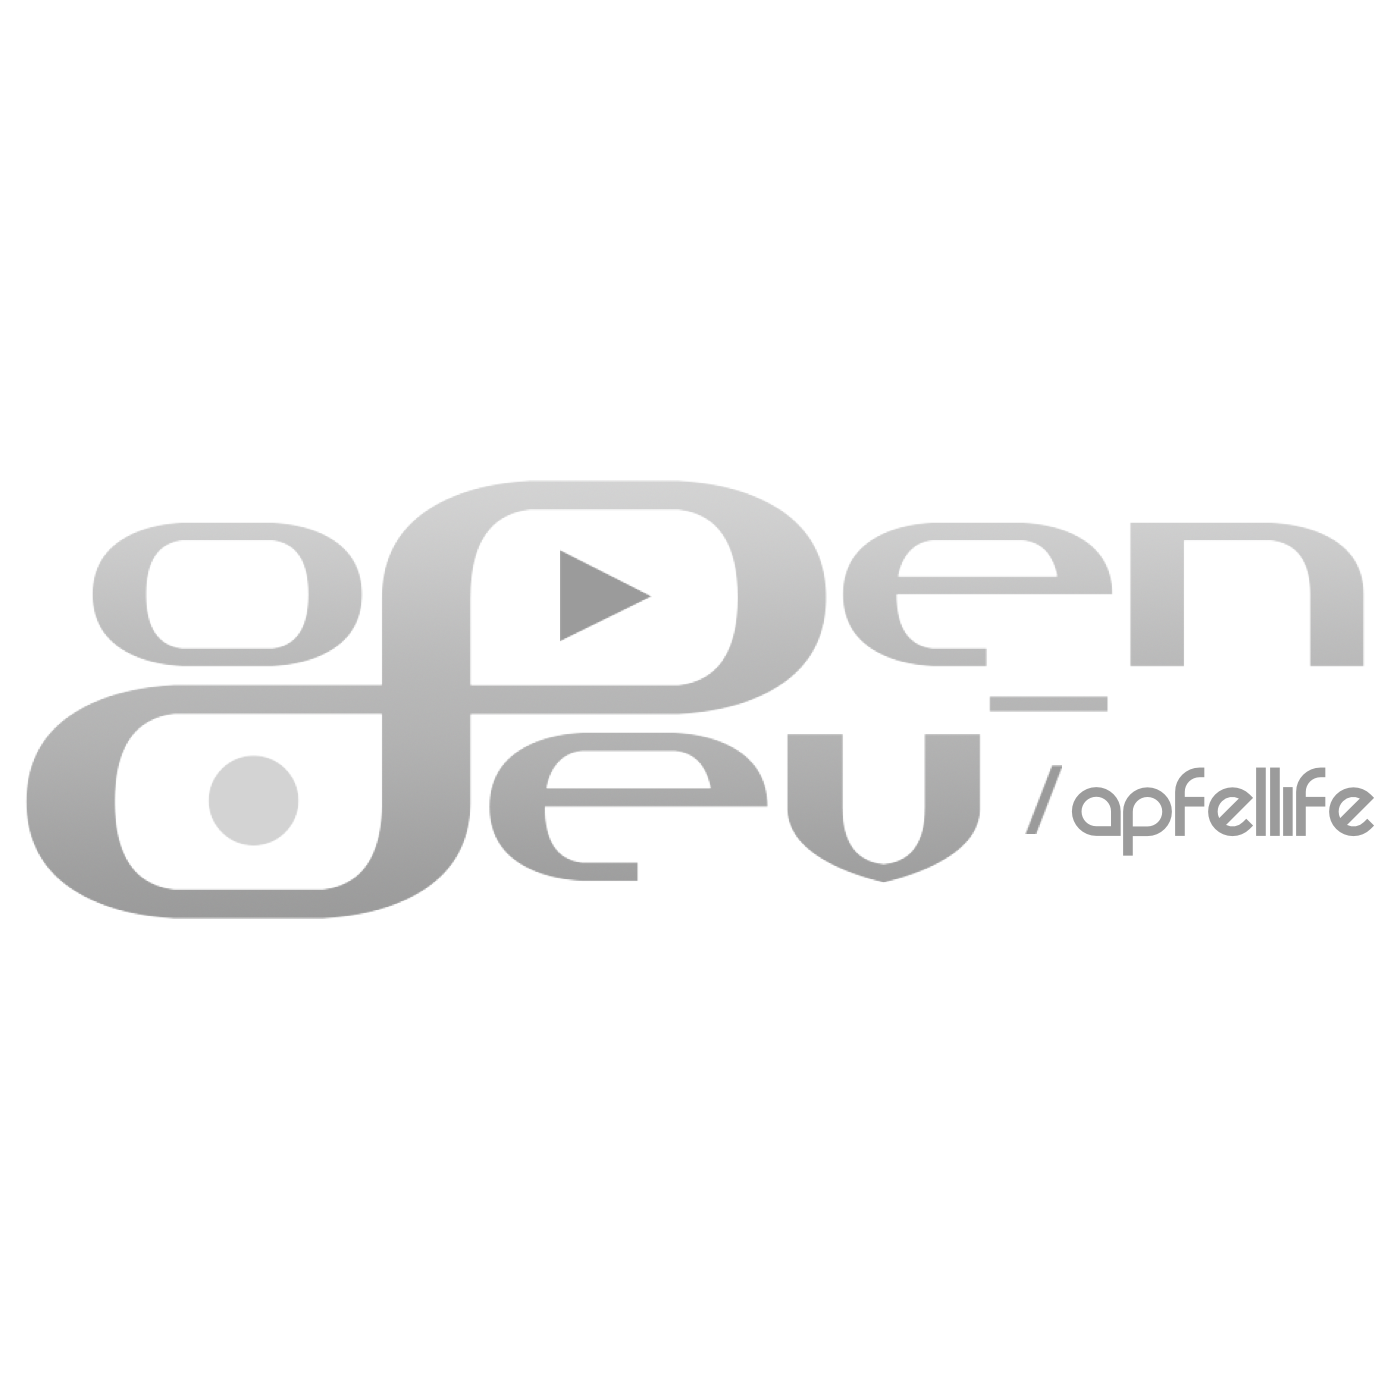 open-dev /apfellife